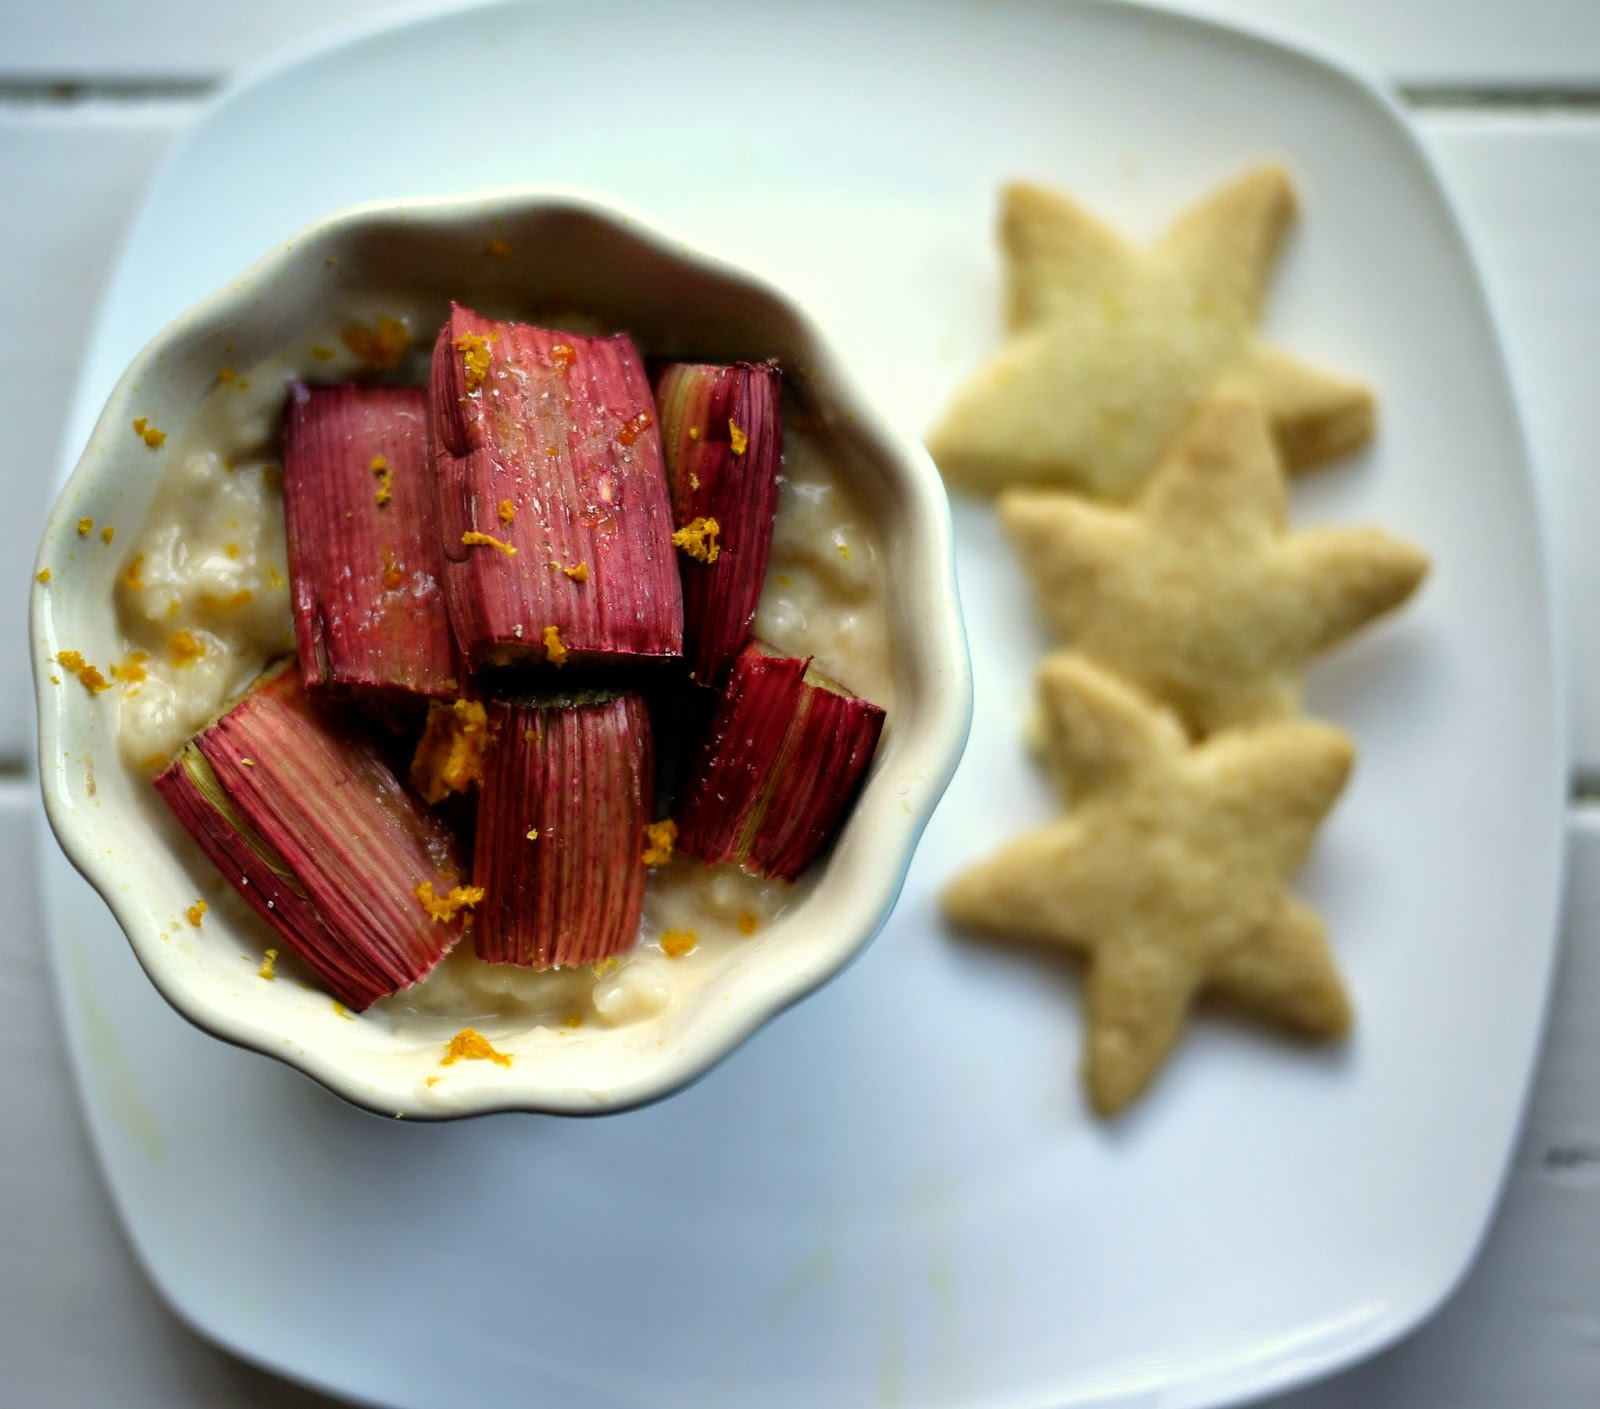 Roasted Rhubarb Rice Pudding with Orange Shortbread